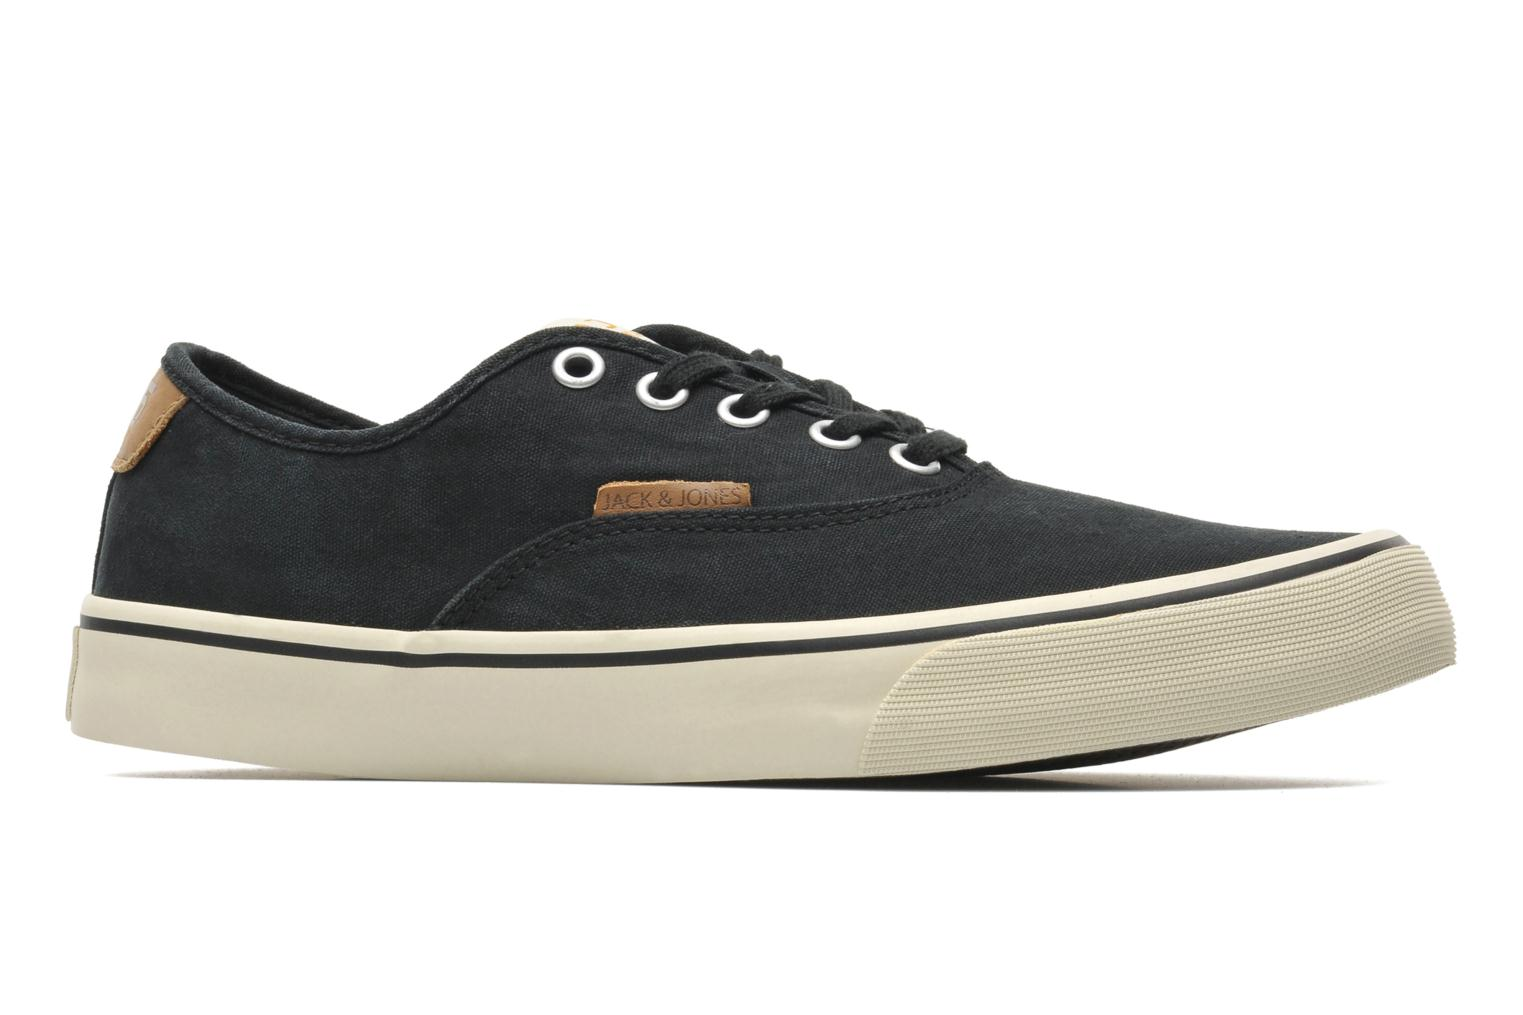 JJ Surf Cotton Low Pirate Black